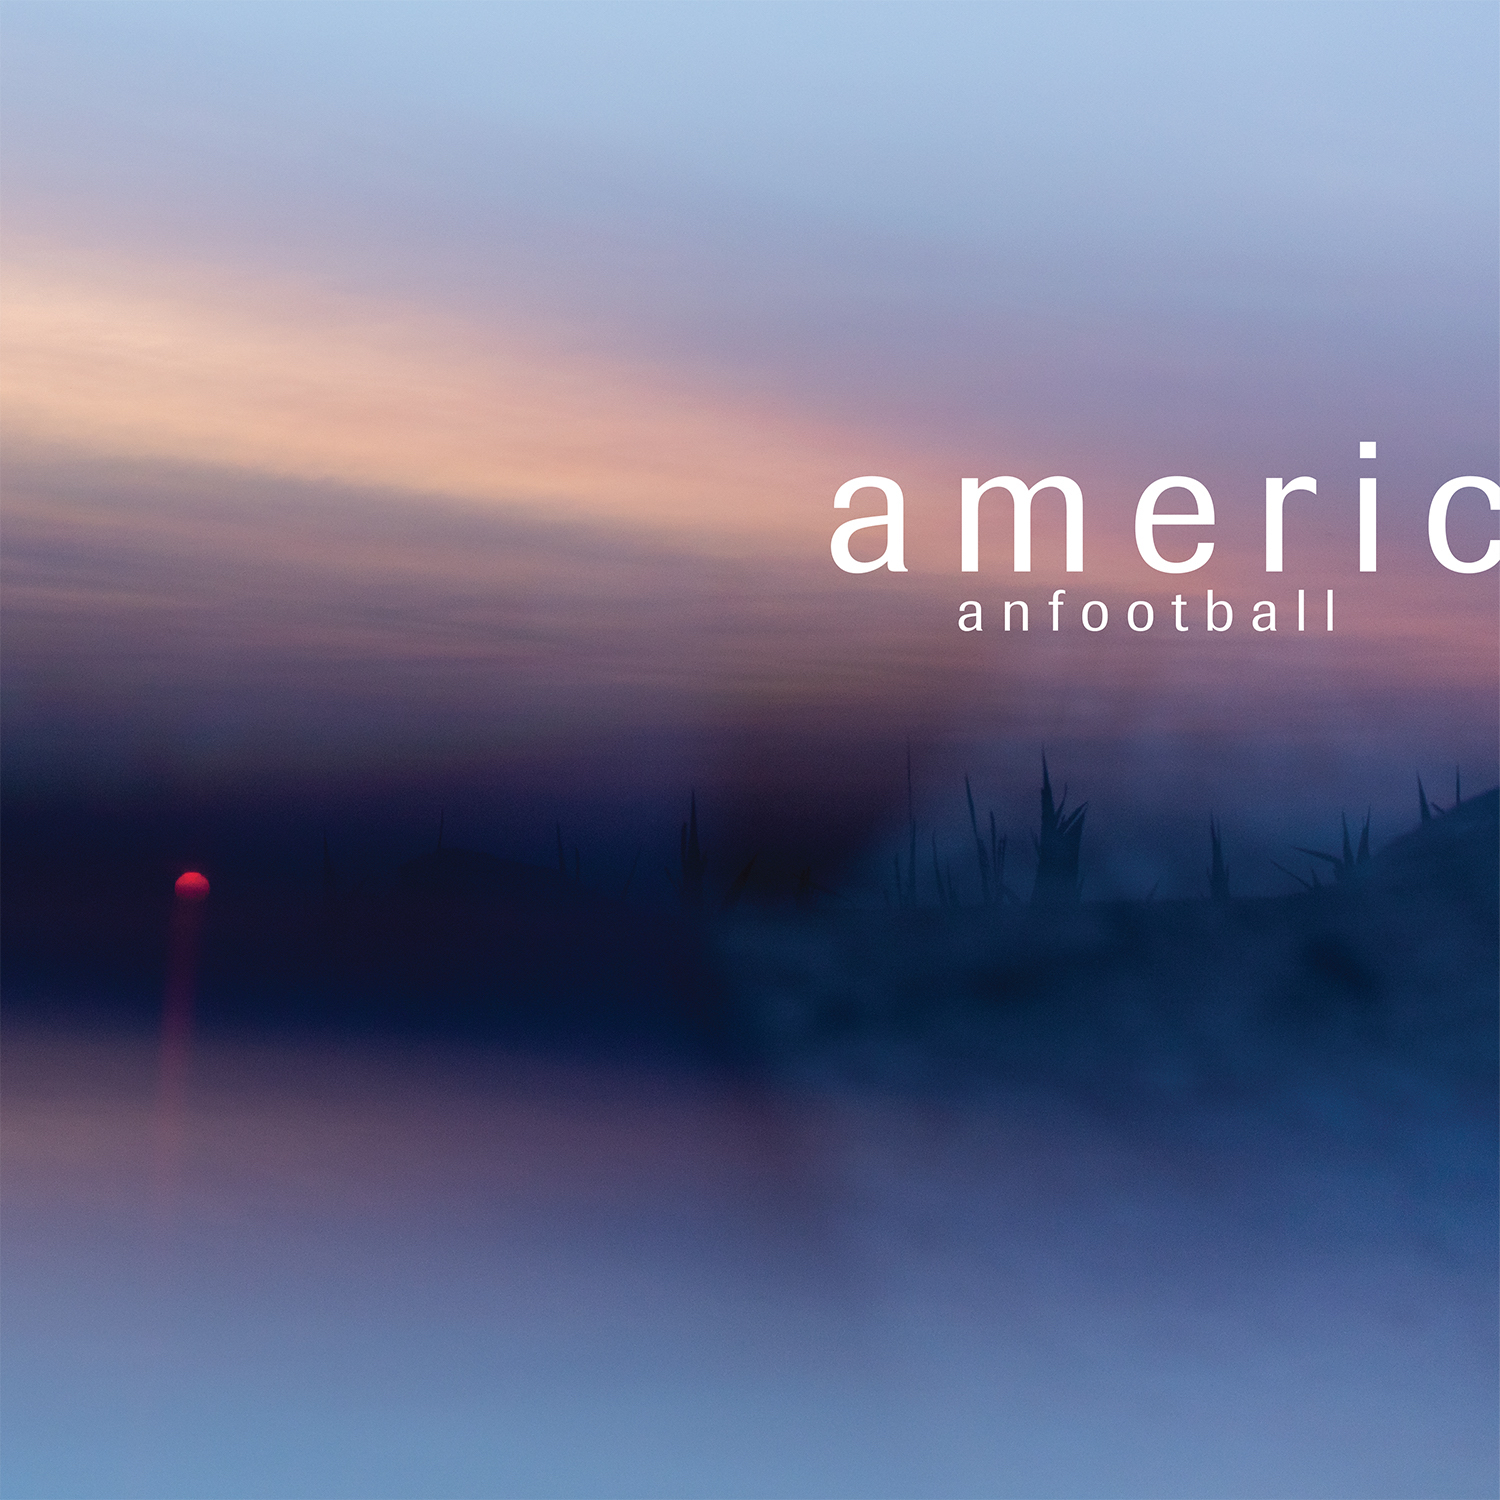 american football 3 album American Football announce new album, share Silhouettes: Stream